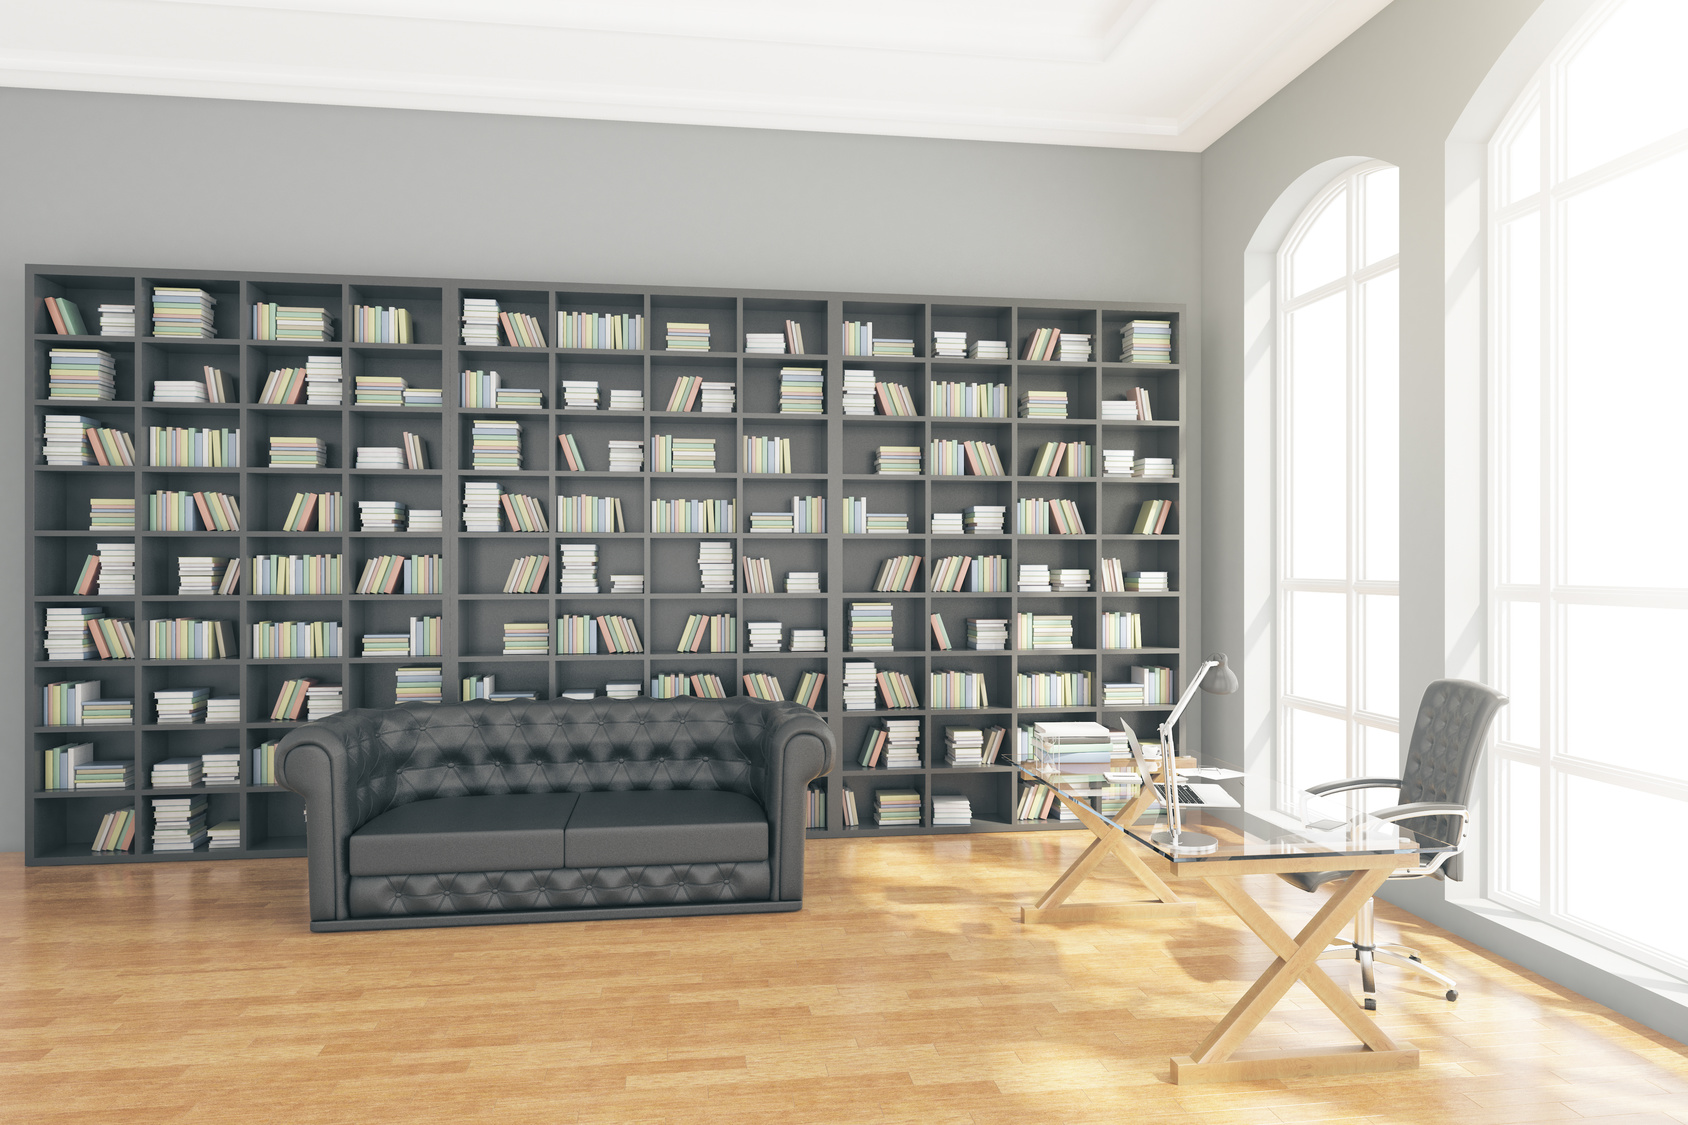 la m thode pour fabriquer une biblioth que sur mesure. Black Bedroom Furniture Sets. Home Design Ideas